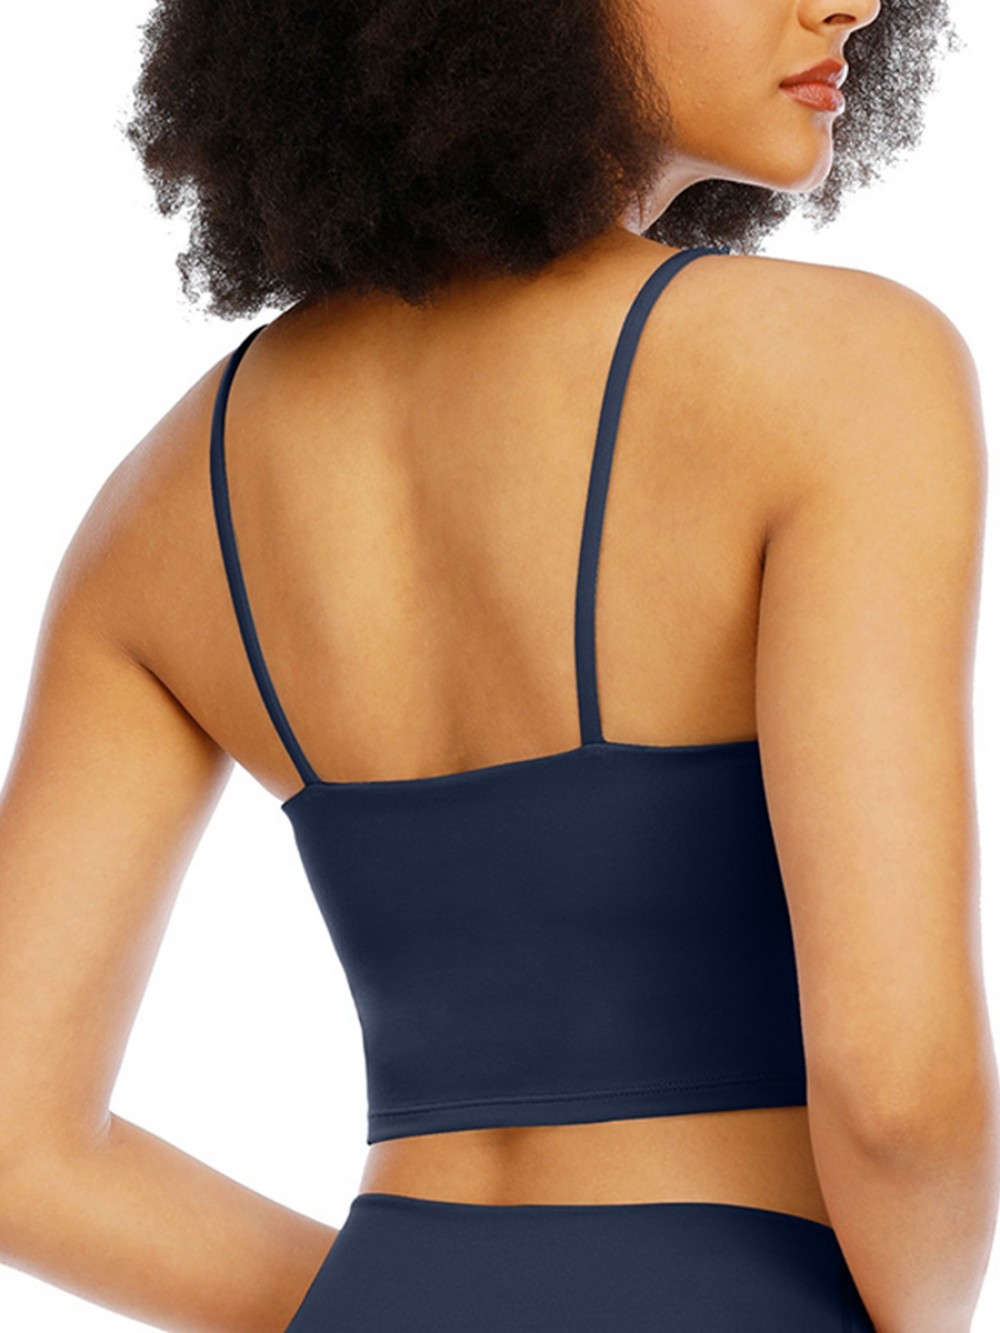 Deep Blue Longline Sports Bra Wirefree Padded All Over Smooth